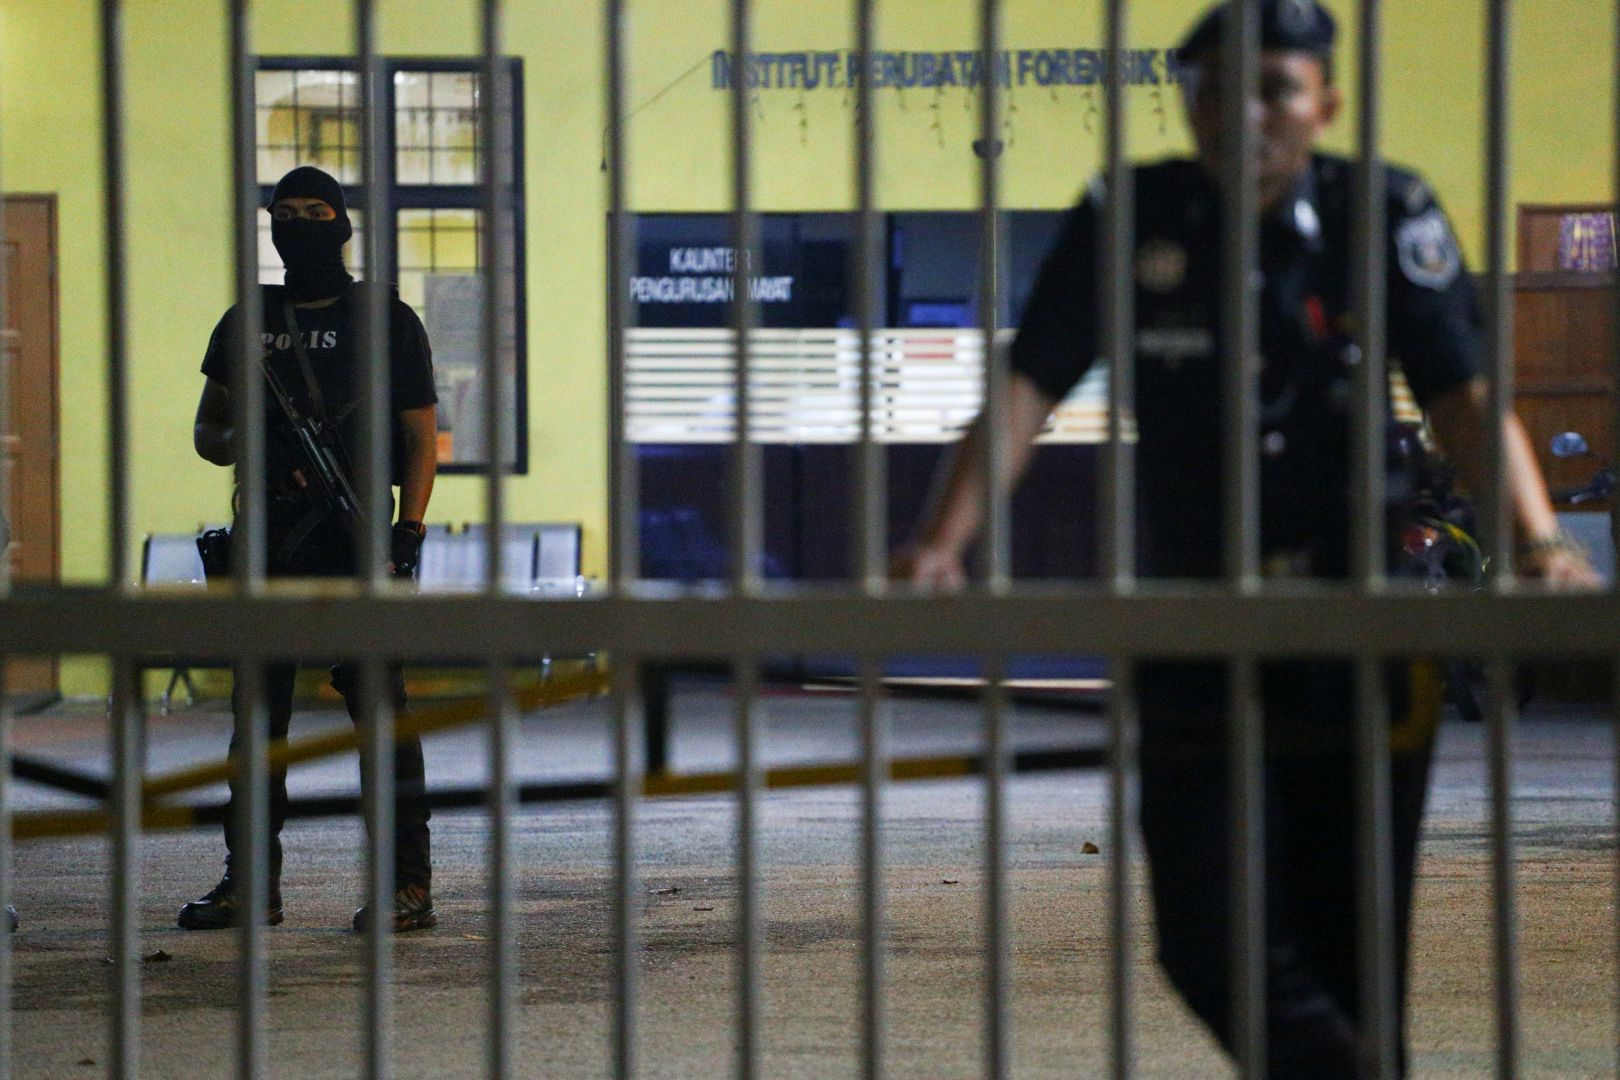 Malaysian police guarding the morgue at Hospital Kuala Lumpur (HKL) which holds Kim Jong-nam's body.